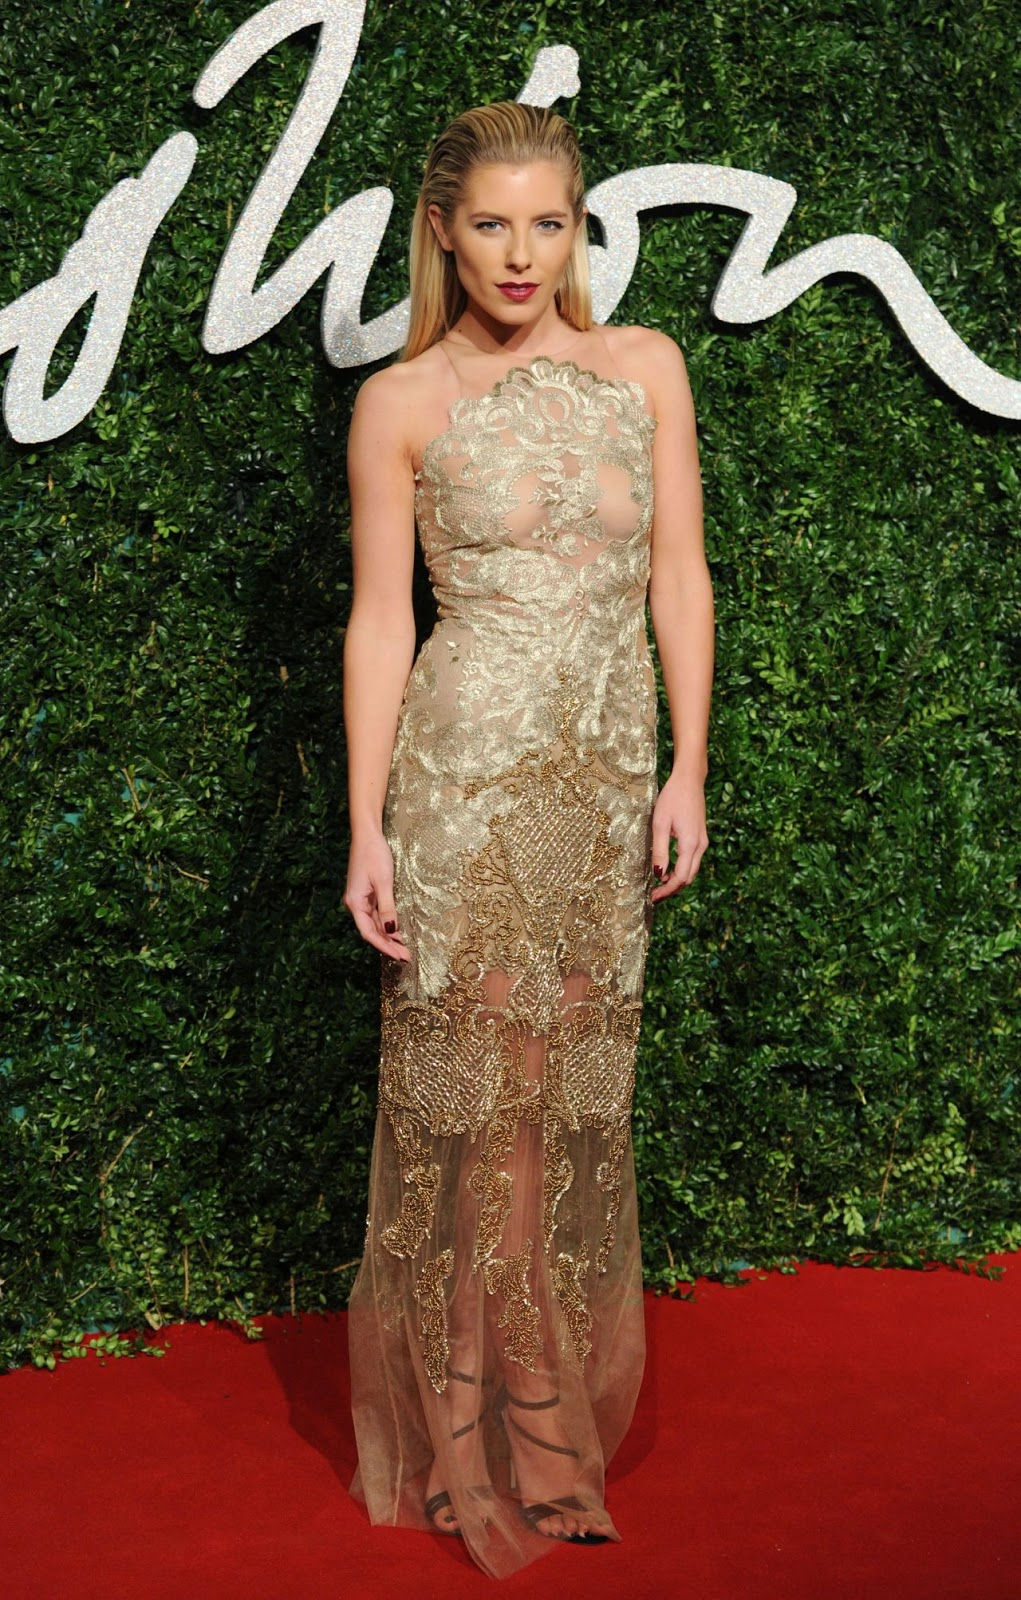 Mollie King wears Patricia Bonaldi peekaboo gown at the 2014 British Fashion Awards